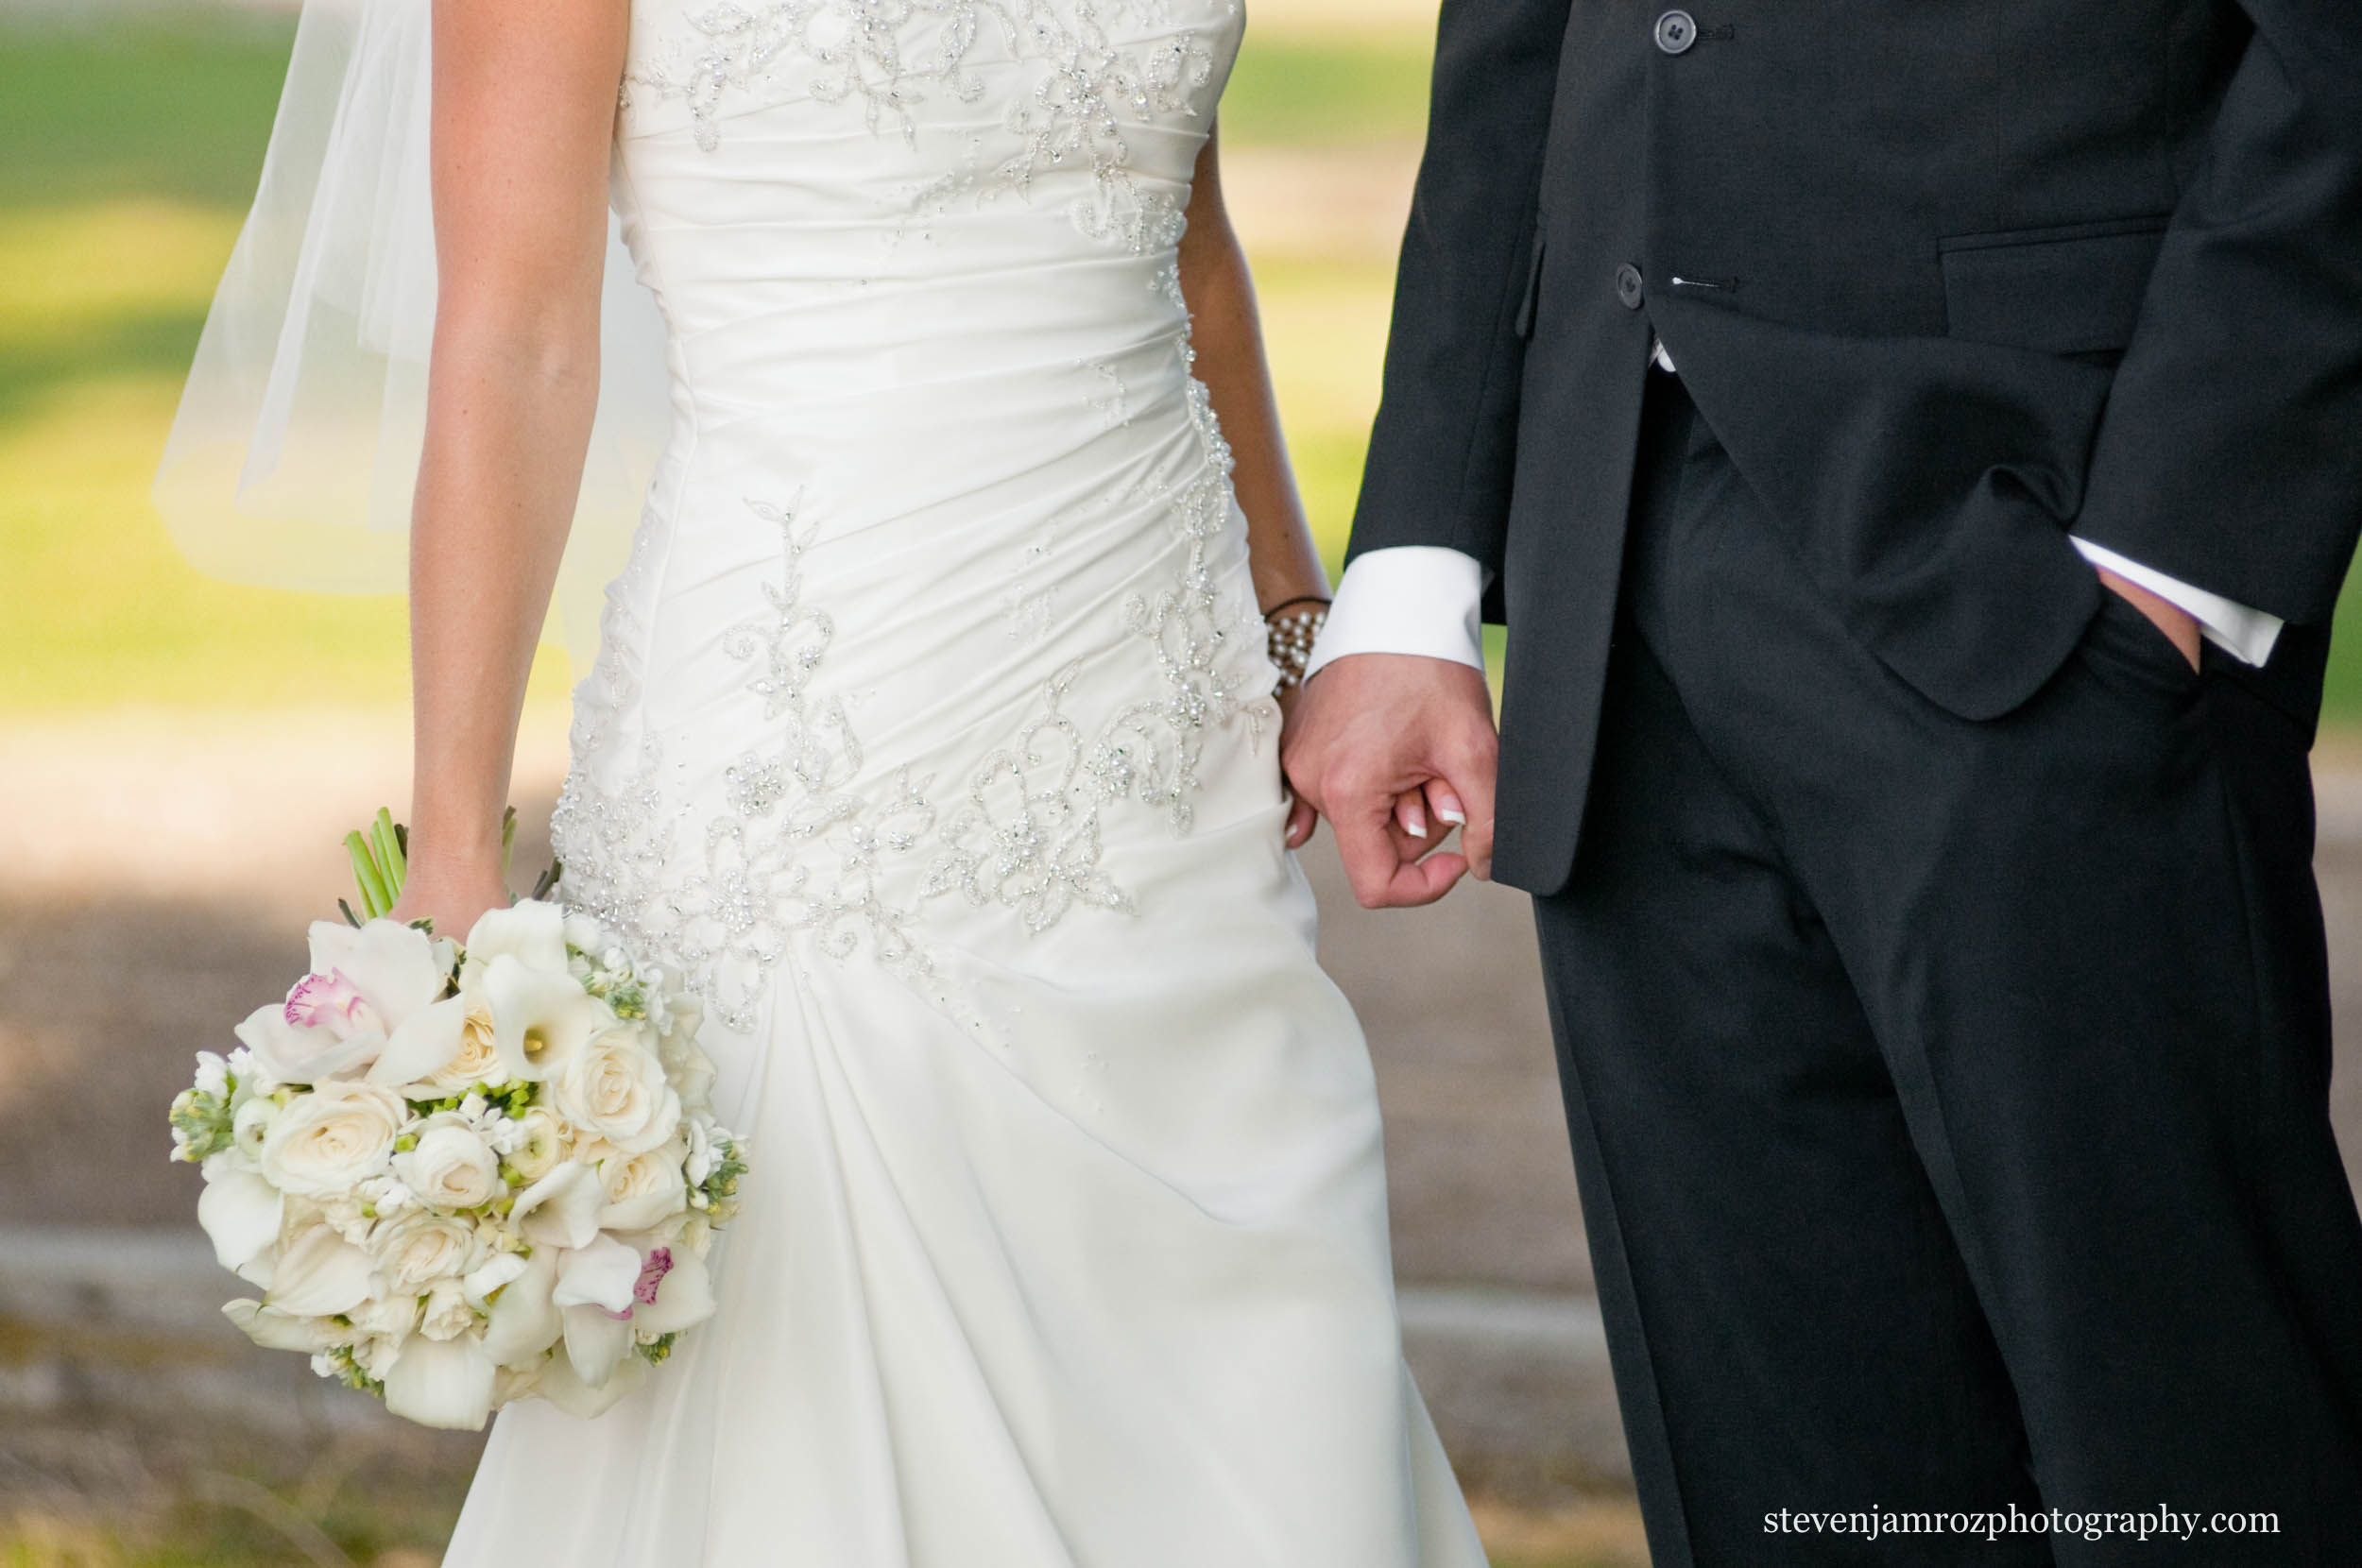 flowers-hands-black-tux-wedding-steven-jamroz-photography-0029.jpg